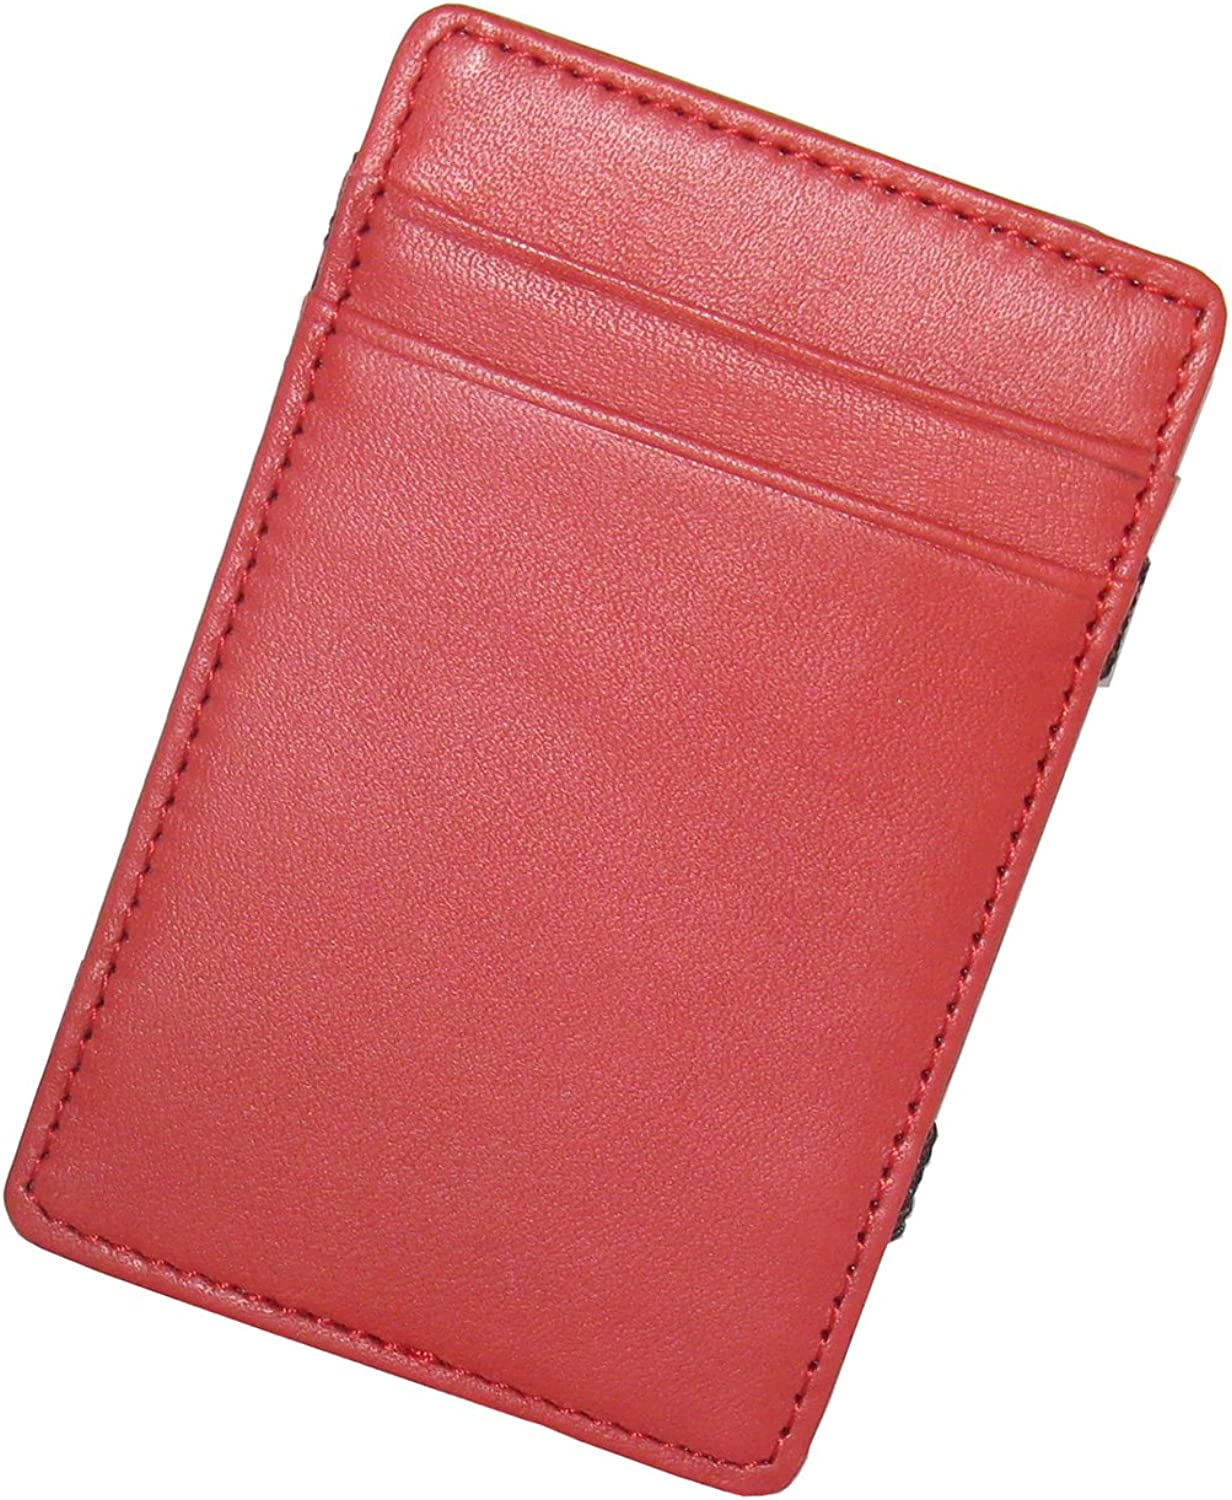 Royce Leather Magic Wallet in Leather, Brown, One Size